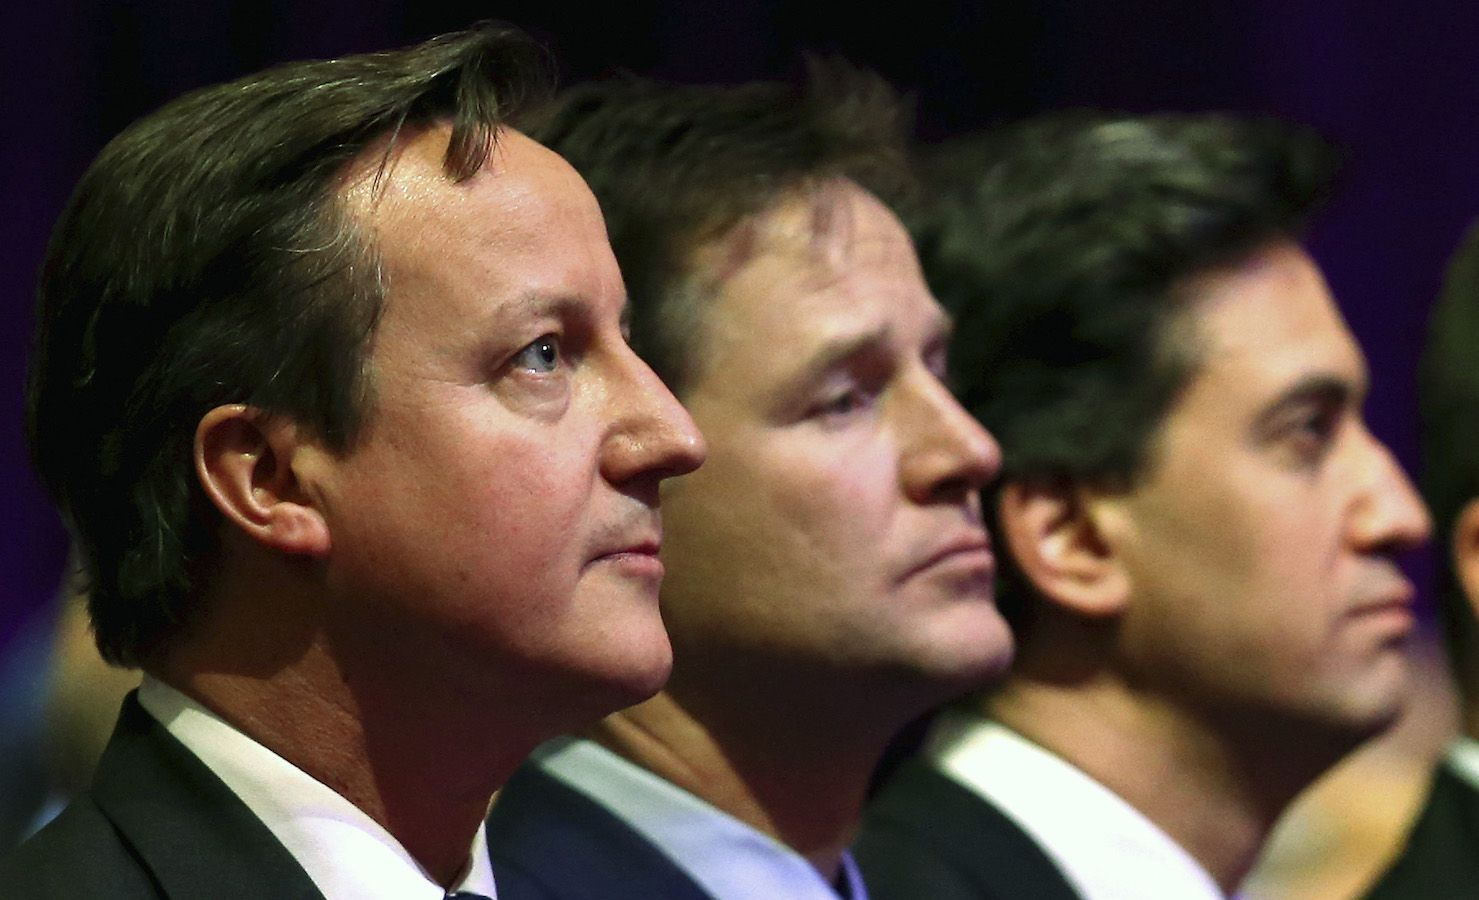 Britain's Prime Minister David Cameron, with Deputy Prime Minister Nick Clegg and Leader of the opposition Labour Party, Ed Miliband attend a Holocaust Memorial Day ceremony at Central Hall Westminster, Tuesday Jan. 27, 2015, in London.  The event in London with invited guests and dignitaries marks the International Holocaust Remembrance Day and commemorates the 70th anniversary of the liberation of the Nazi Auschwitz death camp. (AP Photo / Chris Jackson, Pool)